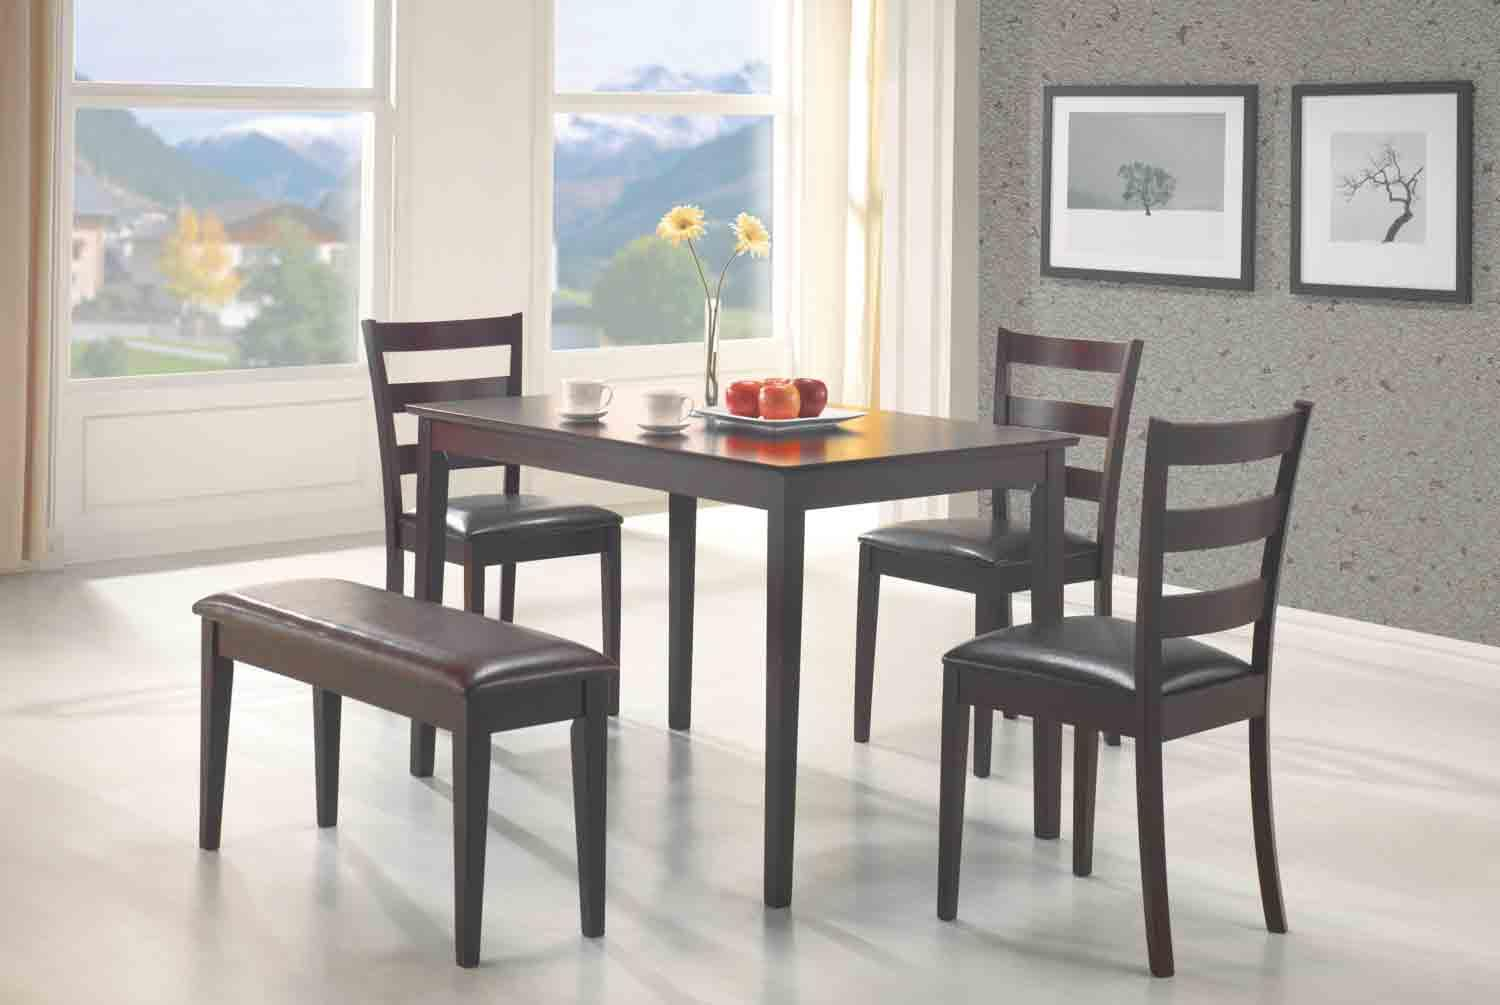 Coaster Taraval 5pc Dining Room Set with regard to 10 Clever Designs of How to Makeover Cheap Living Room Set